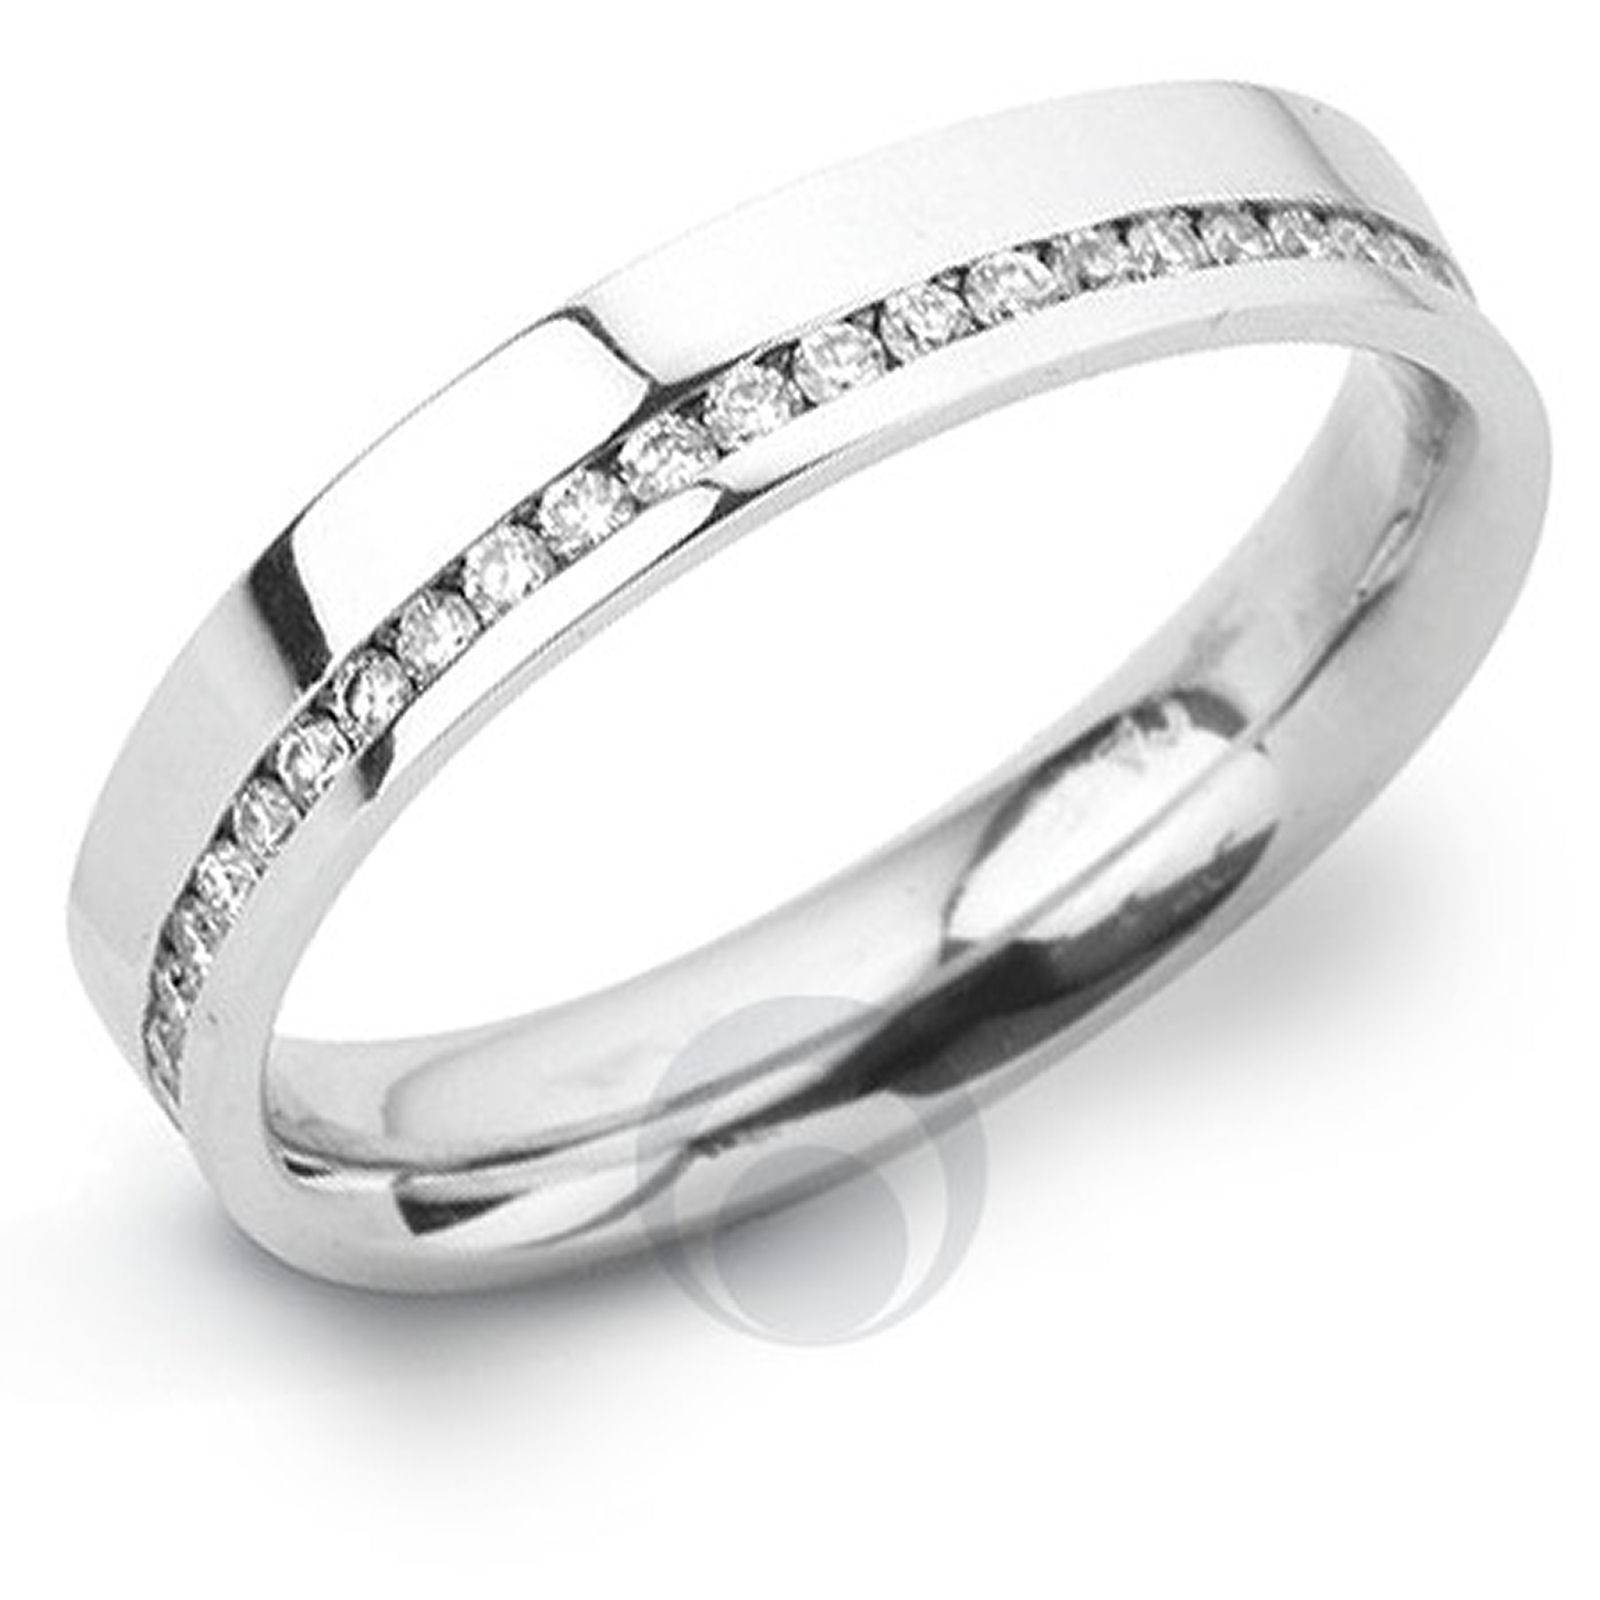 Channel Diamond Platinum Wedding Ring Wedding Dress From The With Regard To Most Recently Released Platinum And Diamond Wedding Bands (View 4 of 15)